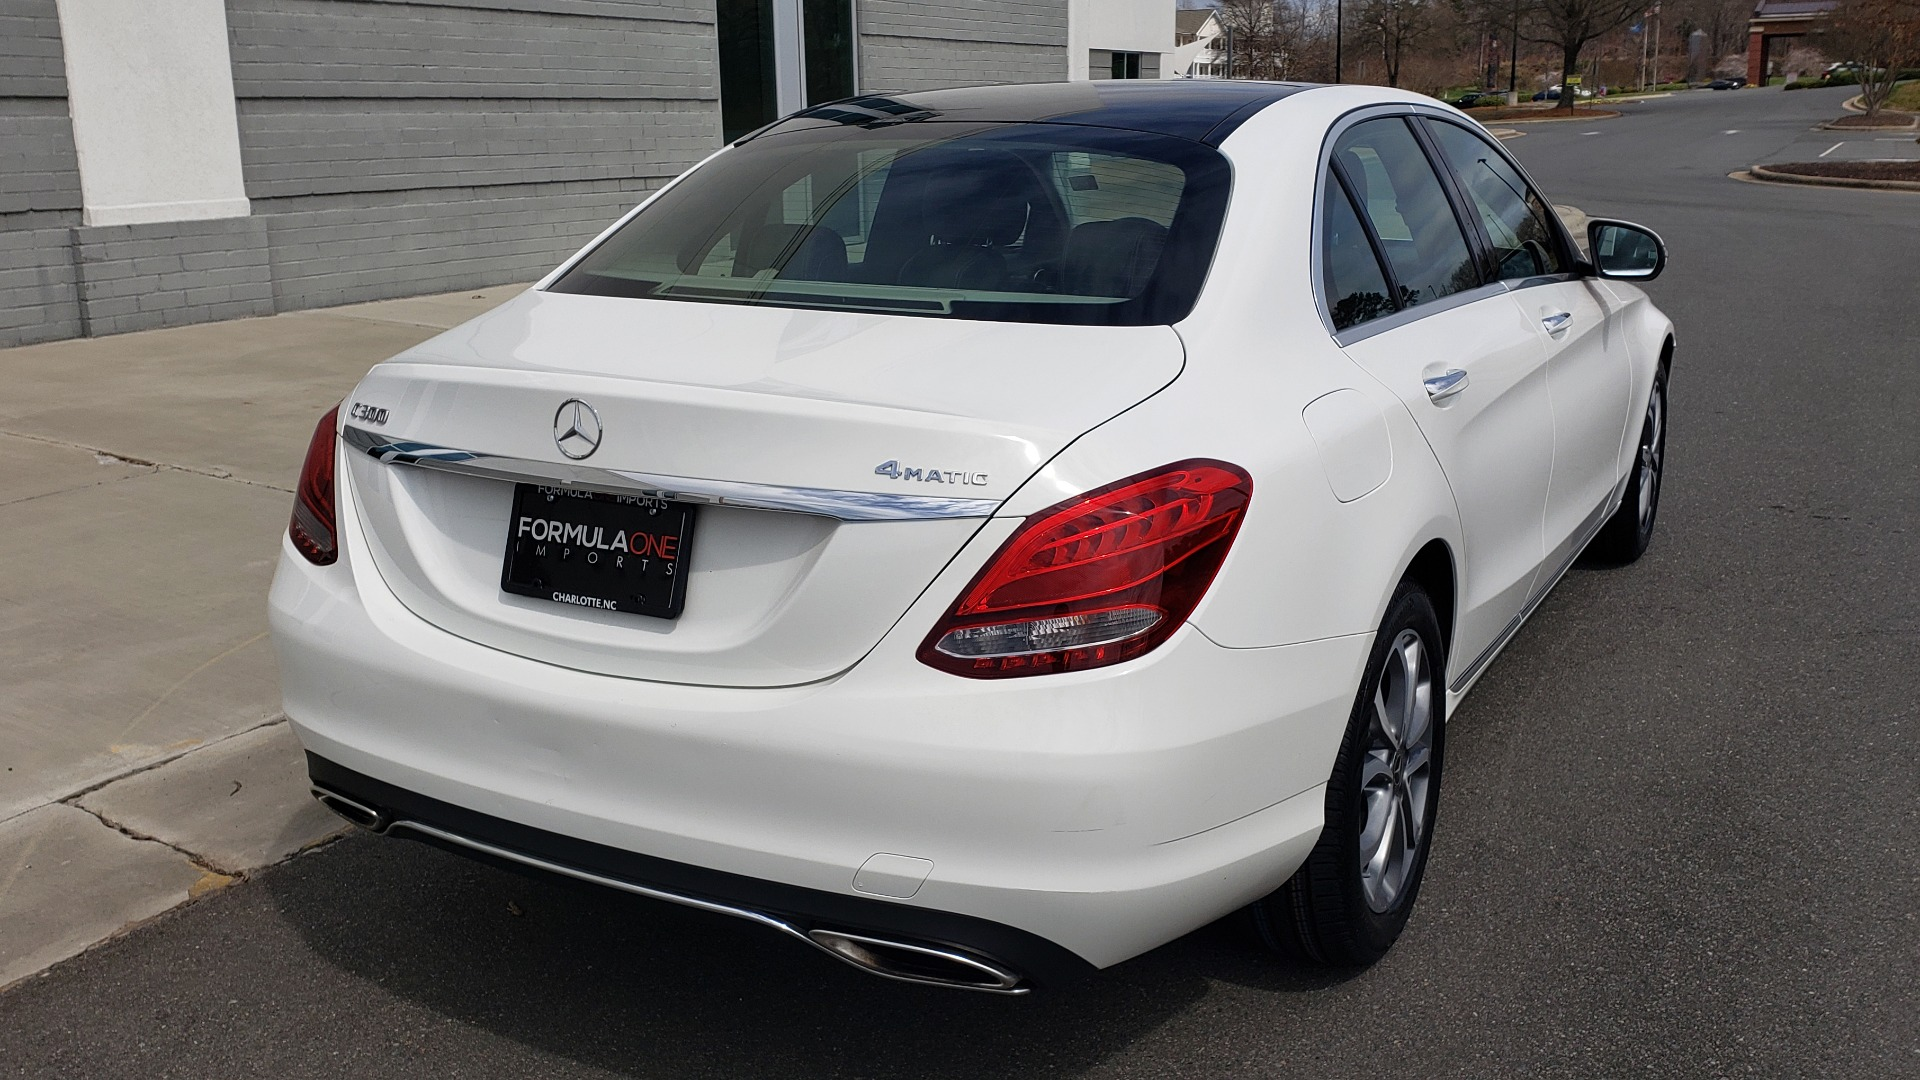 Used 2018 Mercedes-Benz C-CLASS C 300 4MATIC PREMIUM / HTD STS / PANO-ROOF / REARVIEW for sale Sold at Formula Imports in Charlotte NC 28227 7